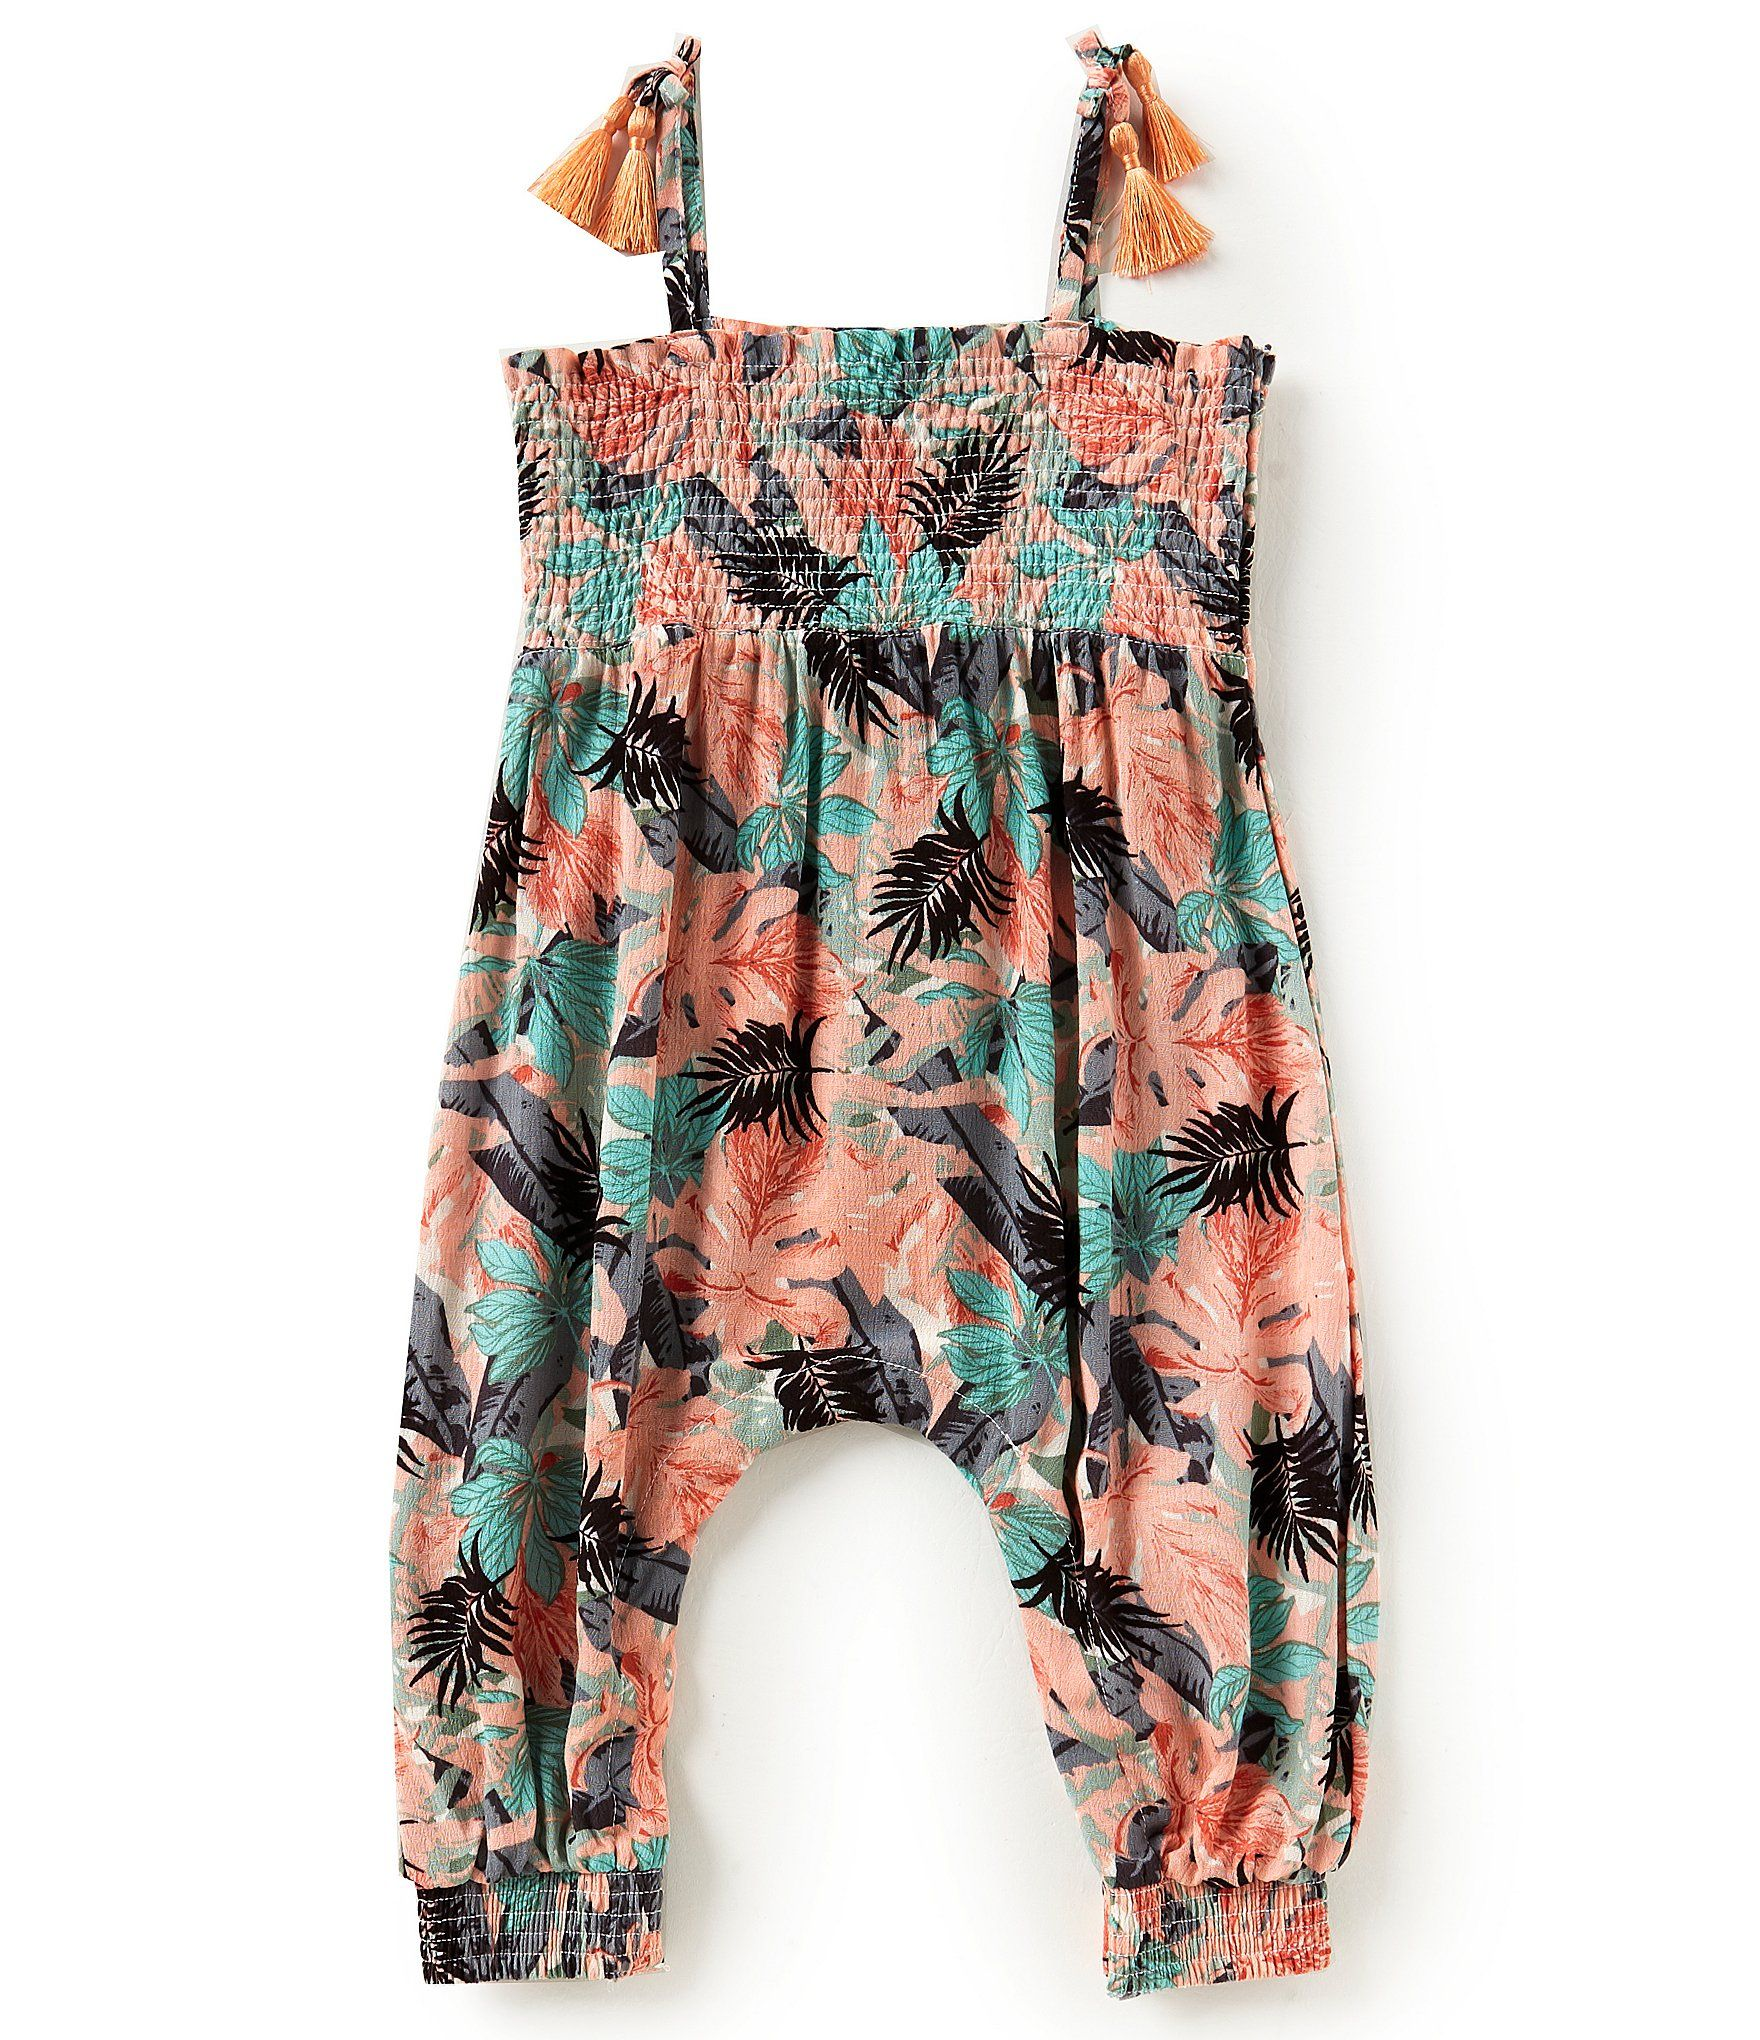 854b62f7f970 Shop for Jessica Simpson Baby Girls 12-24 Months Tropical Floral Printed  Romper at Dillards.com. Visit Dillards.com to find clothing